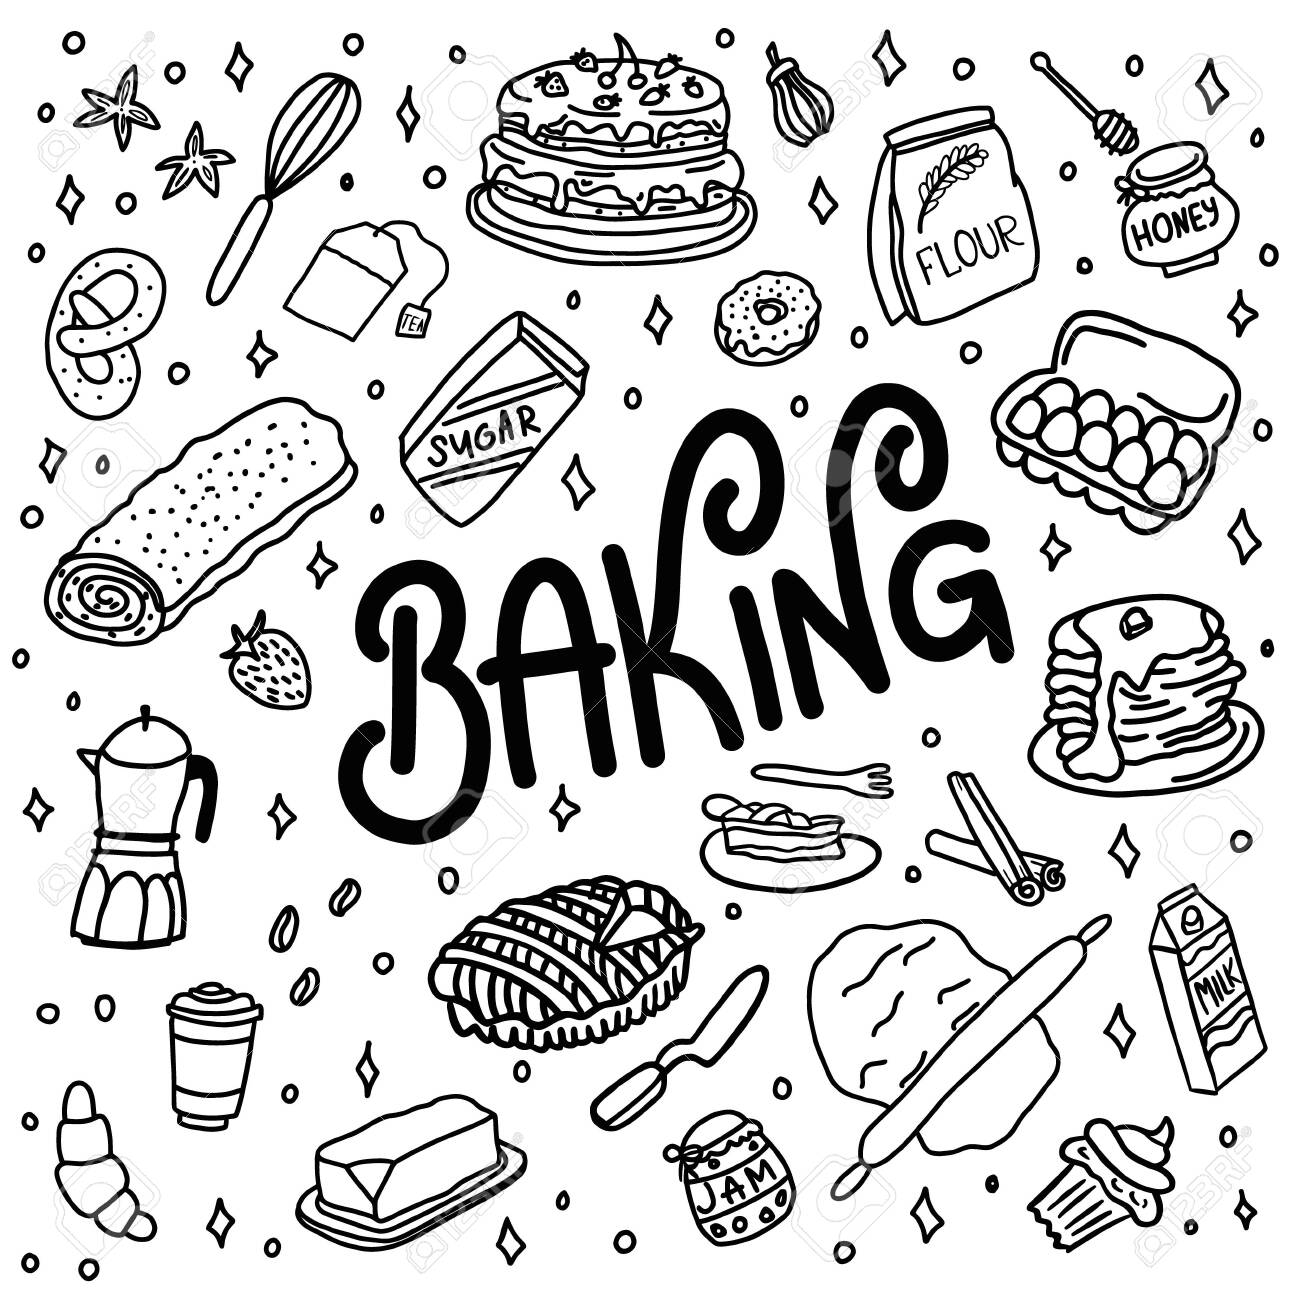 Hand drawn doodle baking utensils and kitchenware. lettering baking. White background - 151201087